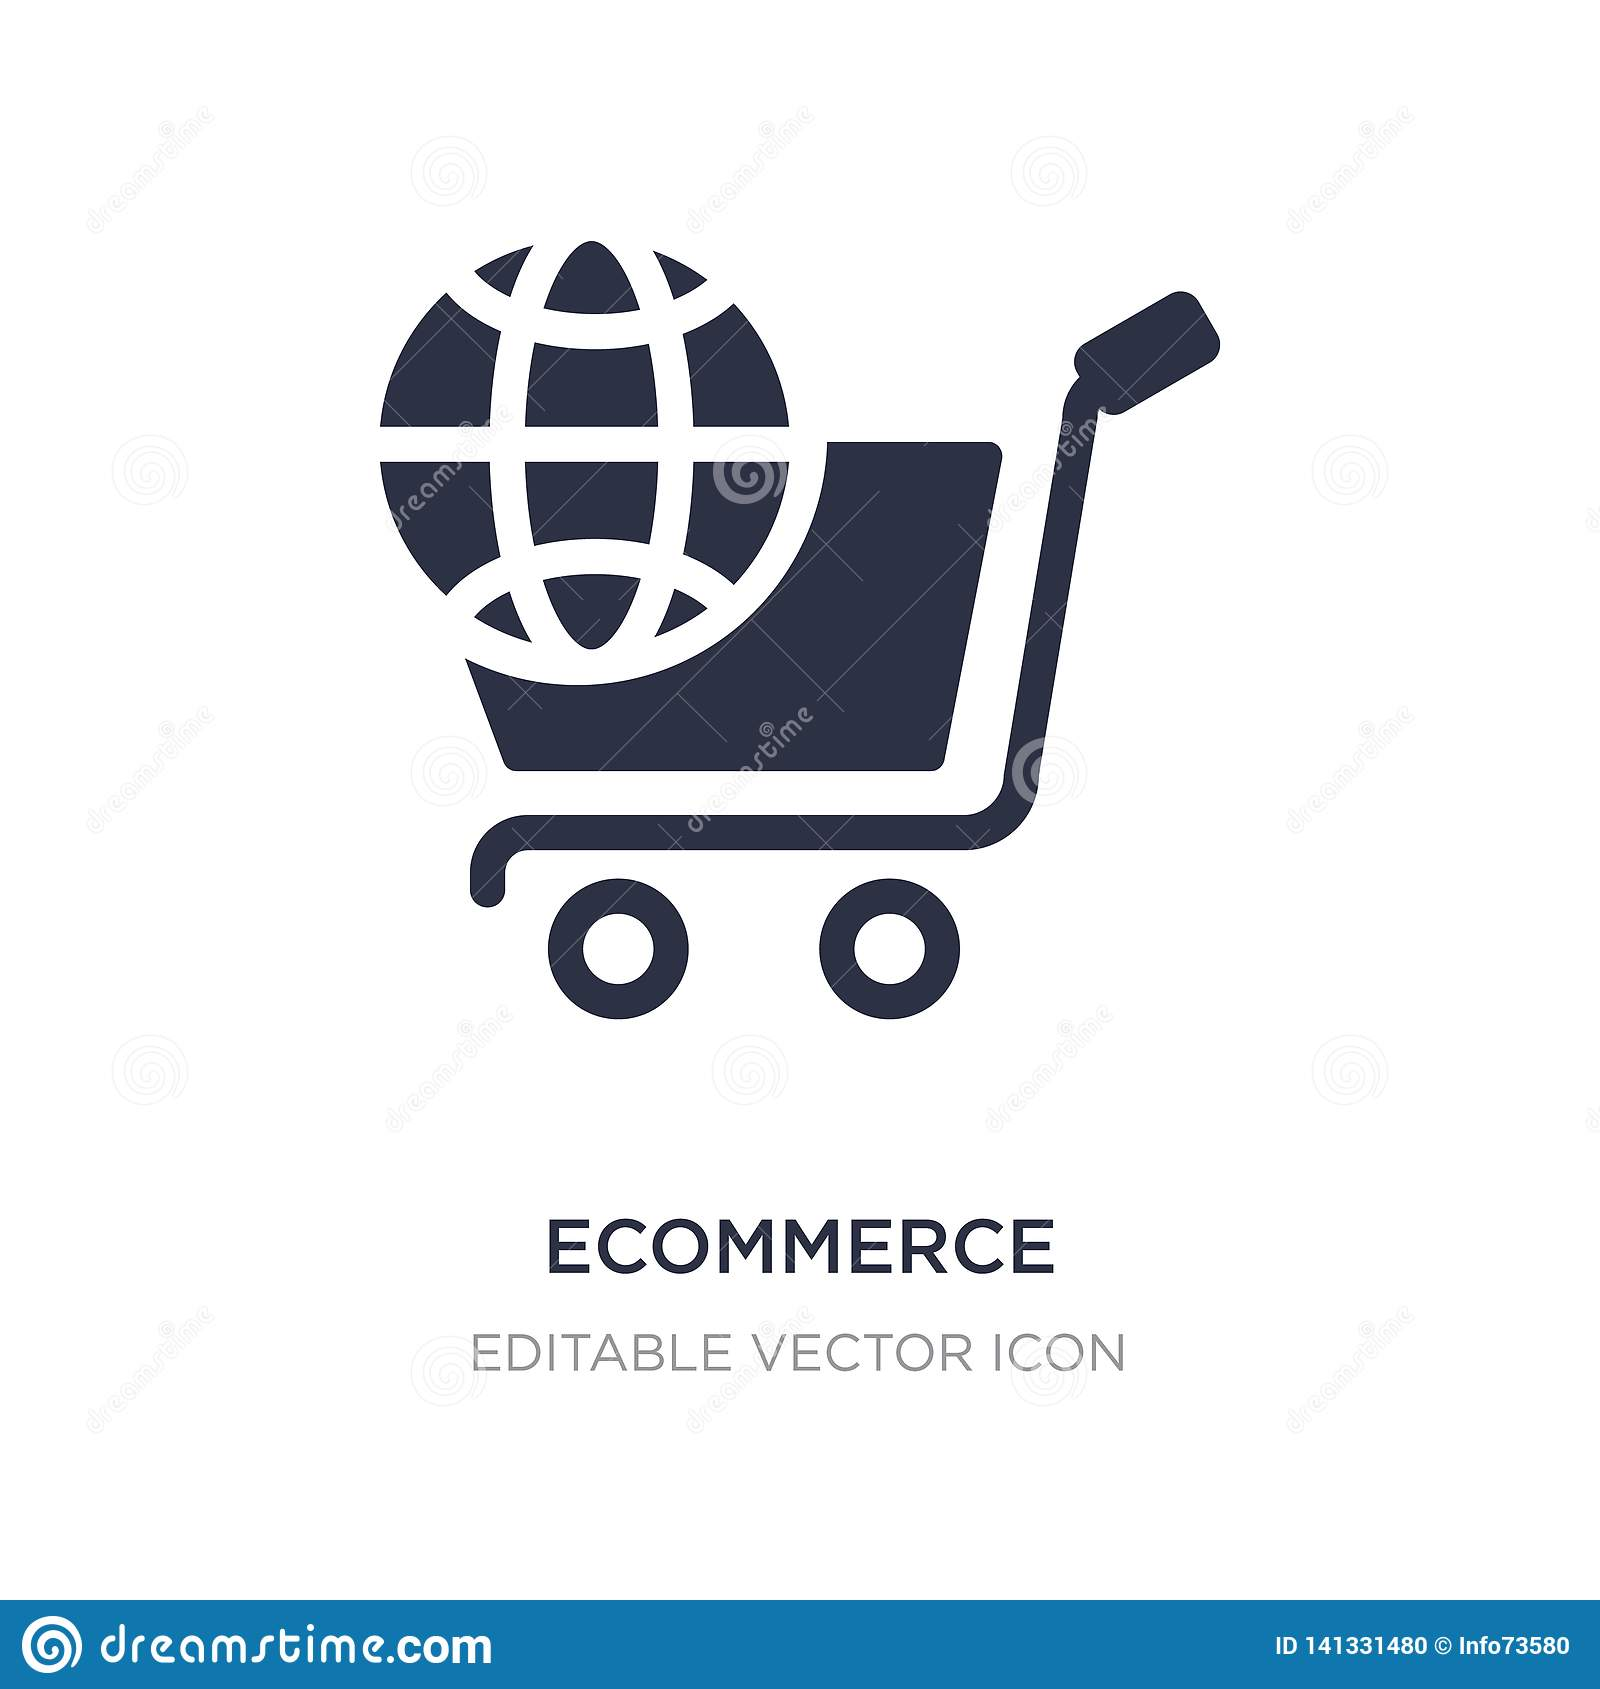 ecommerce icon on white background. Simple element illustration from Social media marketing concept